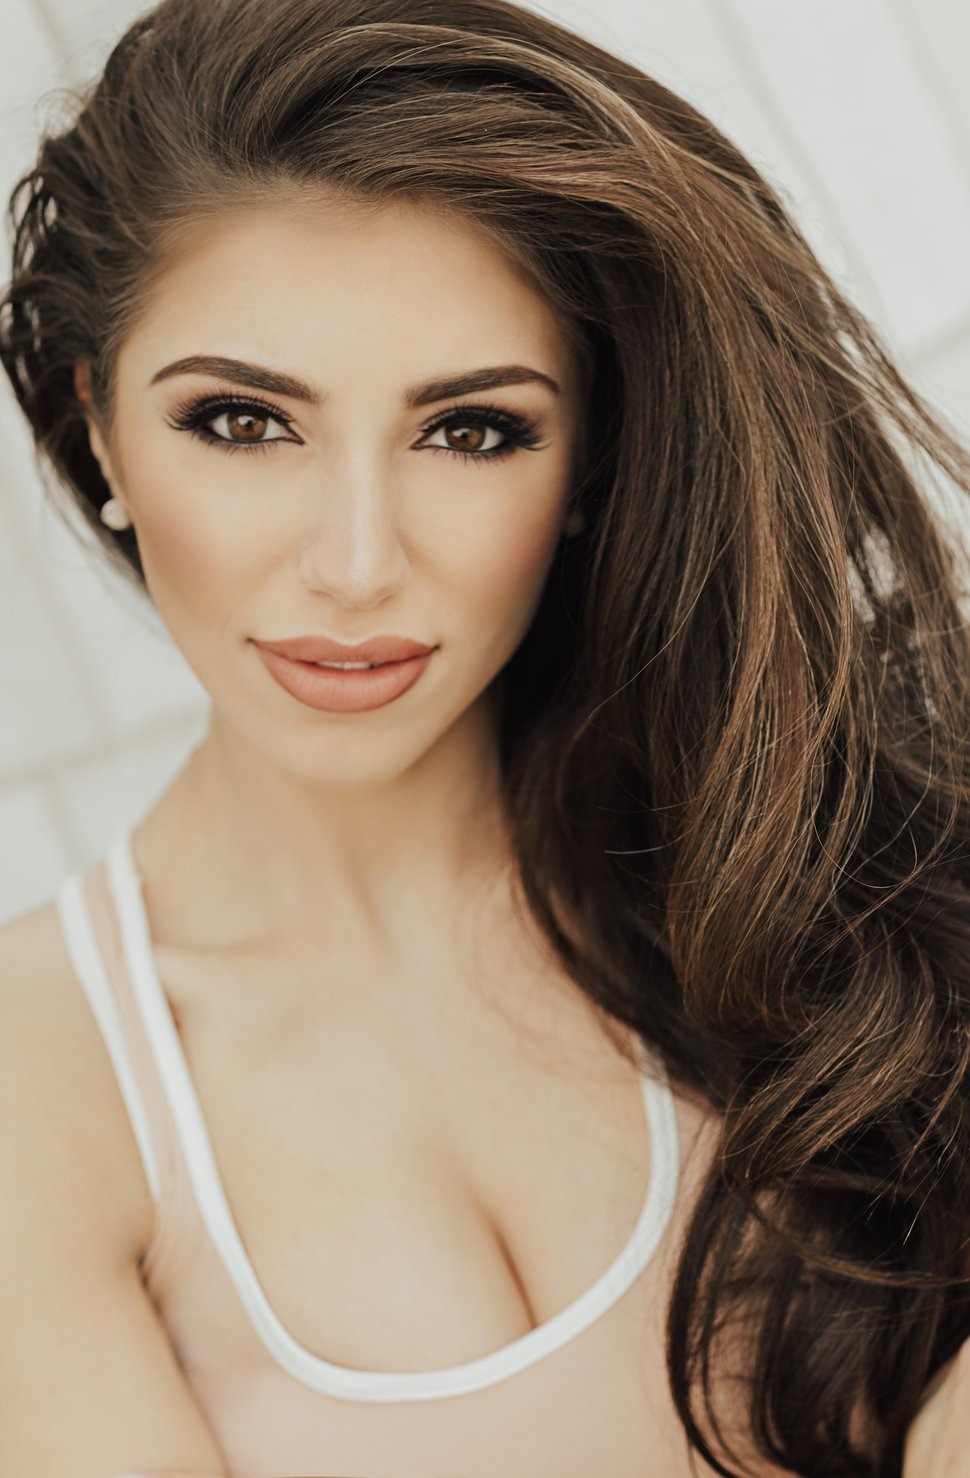 (Credit: The Miss Universe Organization) Miss Utah-USA Narine Ishhanov will compete in the Miss USA pageant on Monday, May 21.